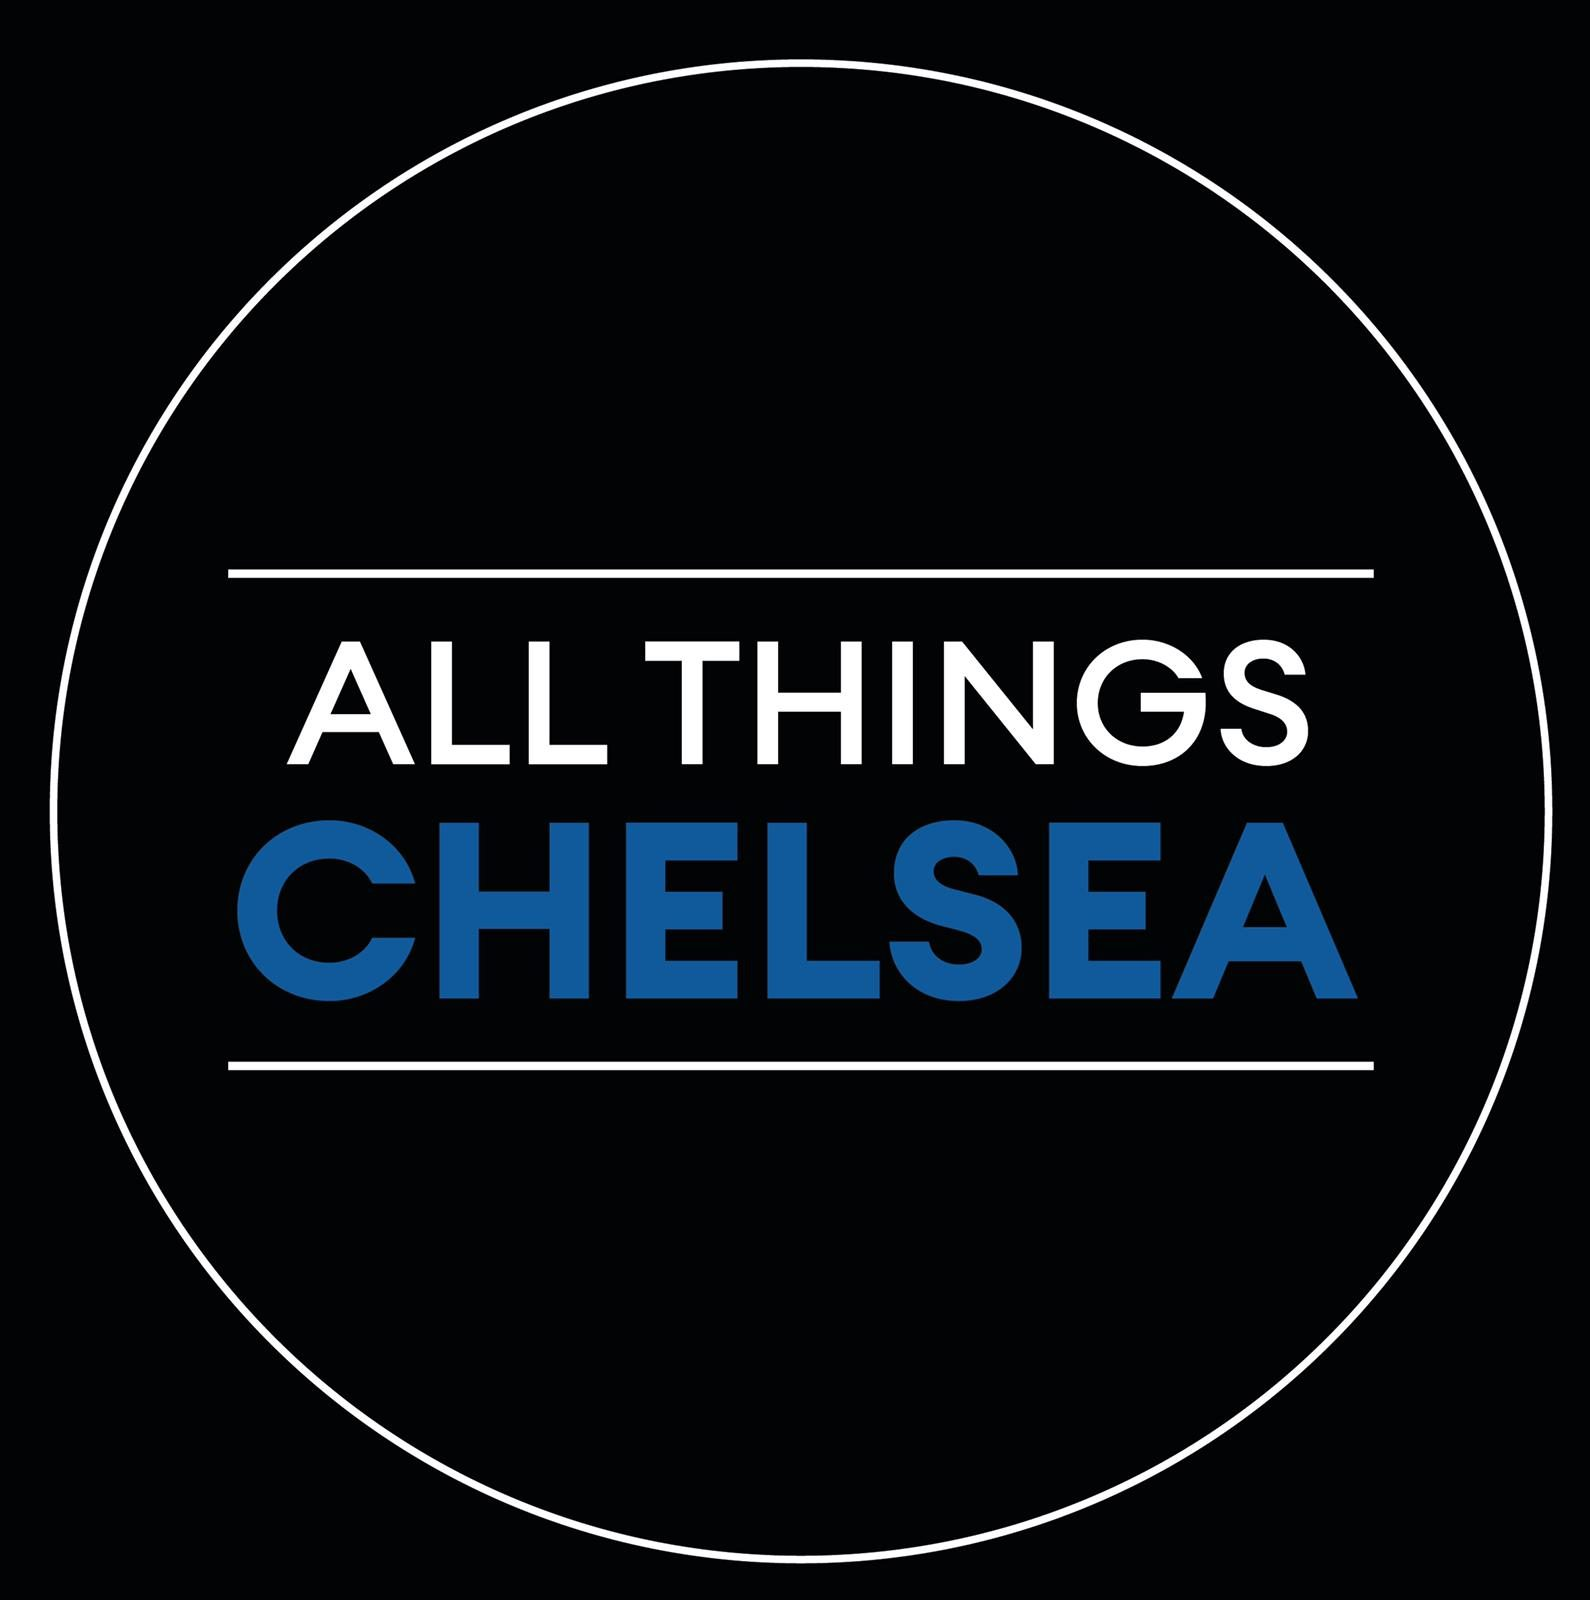 All Things Chelsea